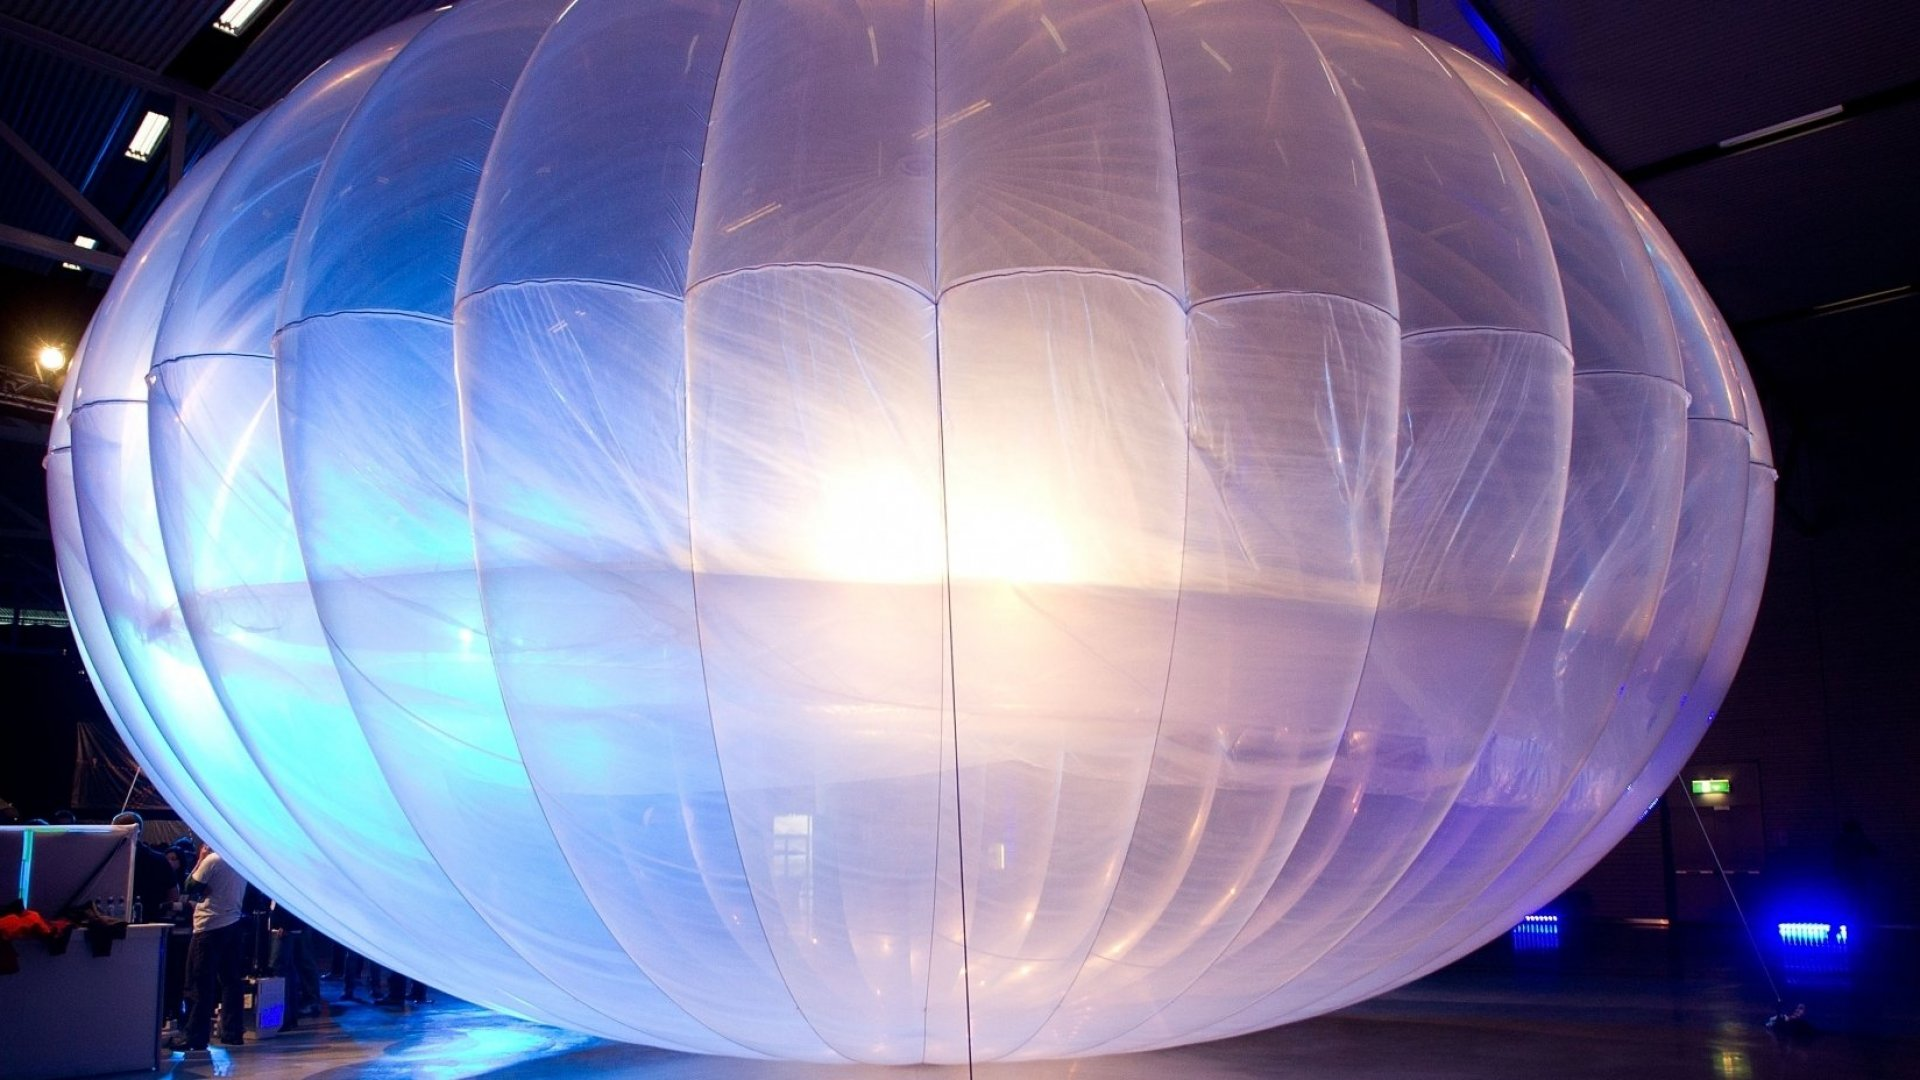 Puerto Rico Has Internet Again Thanks to Google's High-Tech Balloons